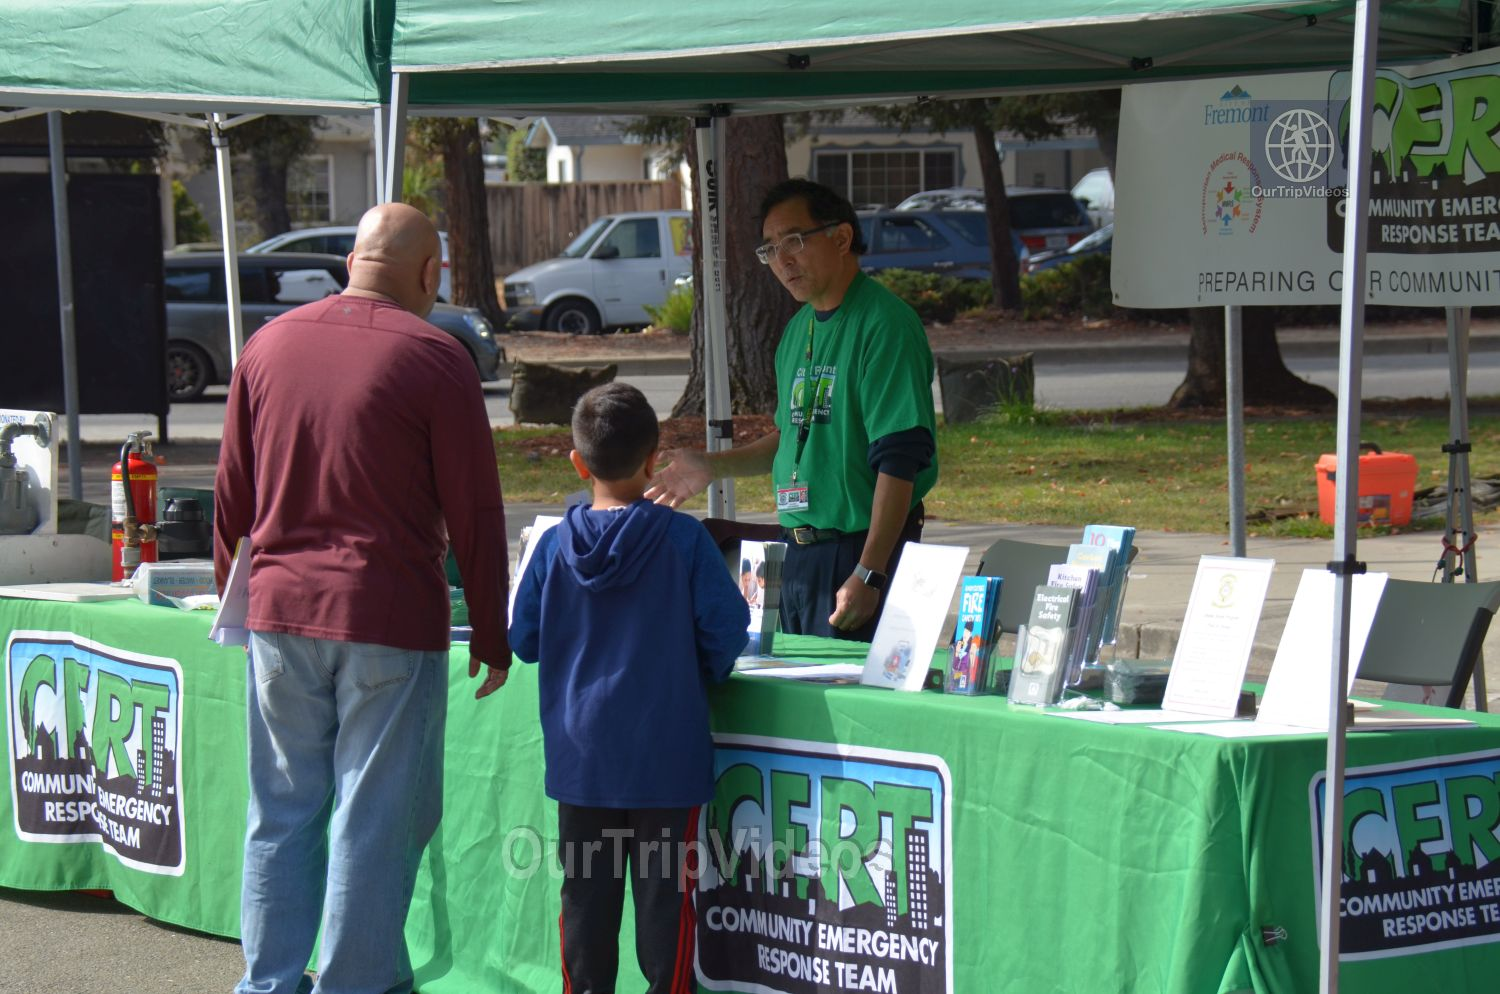 150th Celebration of 1868 Great Quake on Hayward Fault, Fremont, CA, USA - Picture 15 of 25